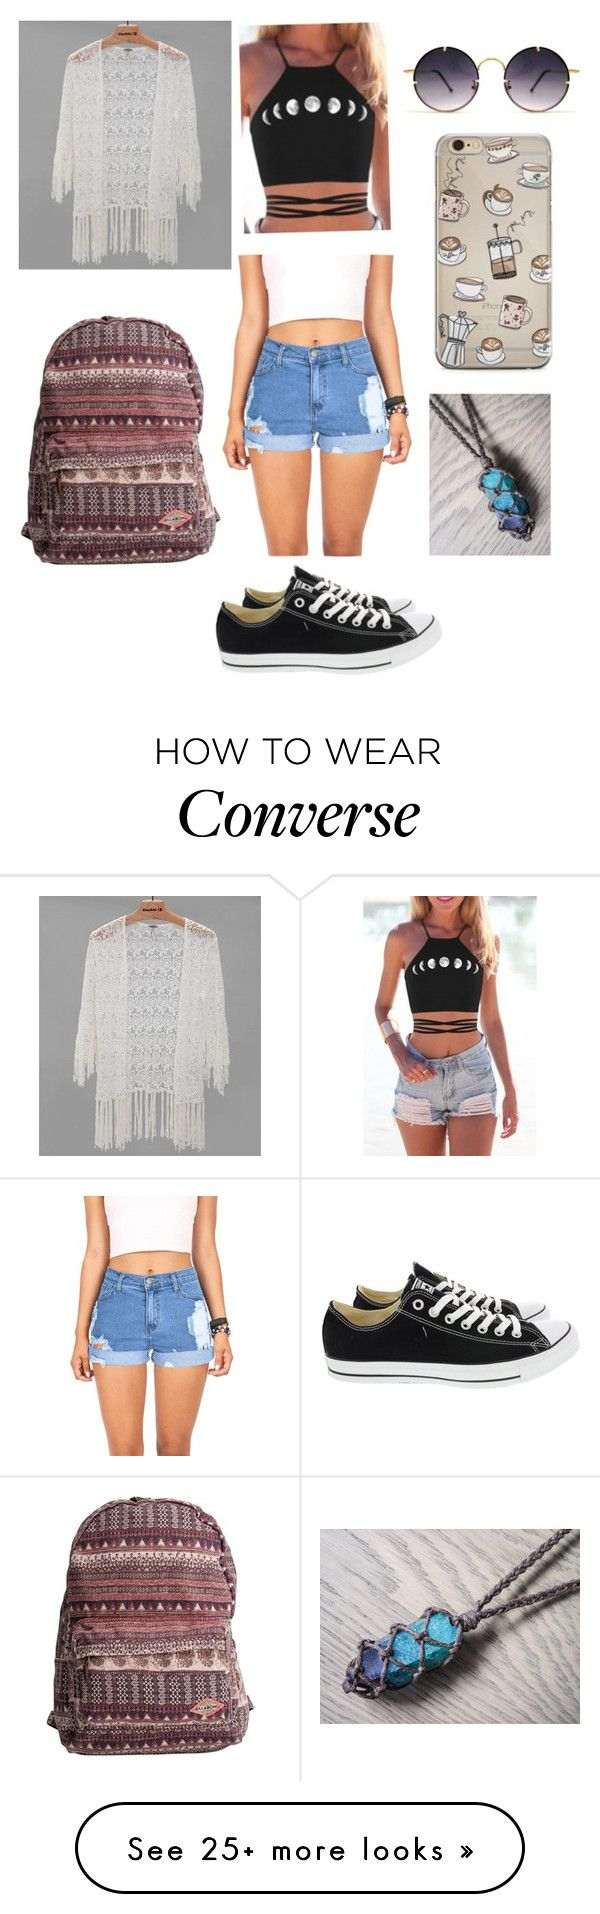 """""""Untitled #971"""" by the-cute-psycho21 on Polyvore featuring Vibrant, Converse, Gimmicks, Billabong and Spitfire"""